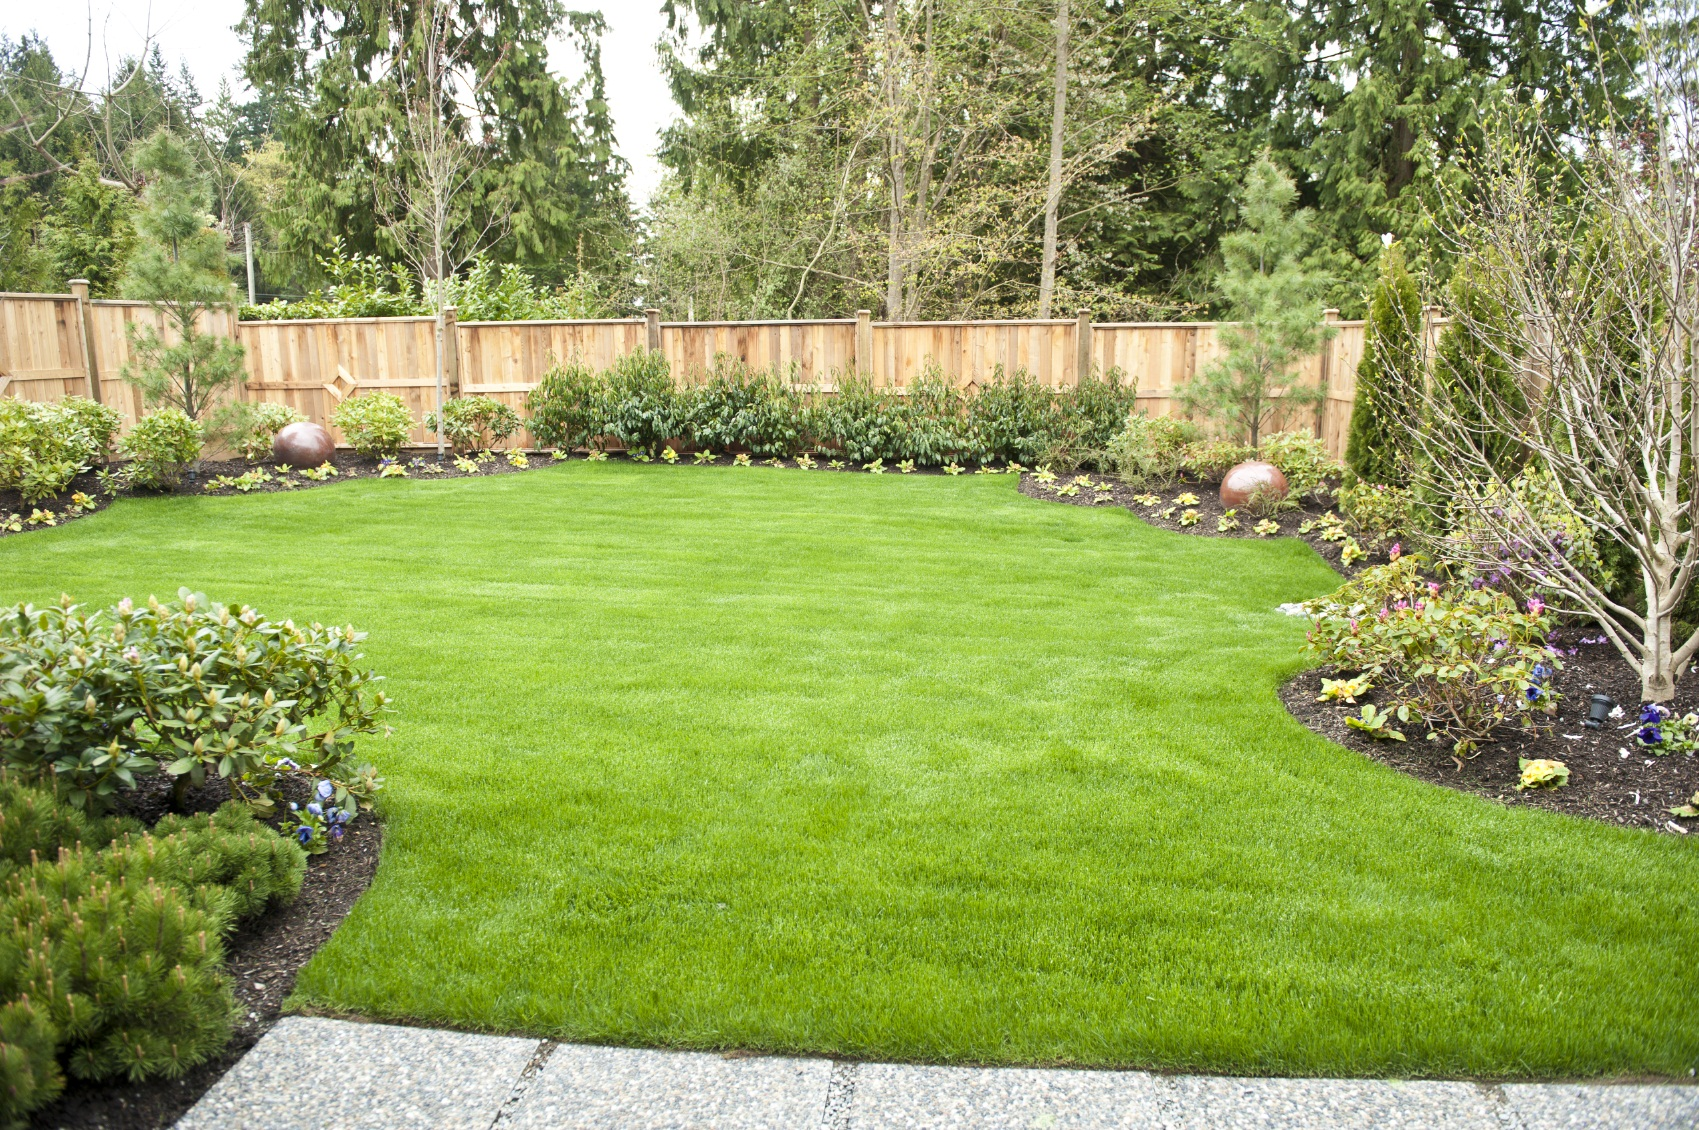 Backyard landscaping tips metamorphosis landscape design for Easy garden design ideas